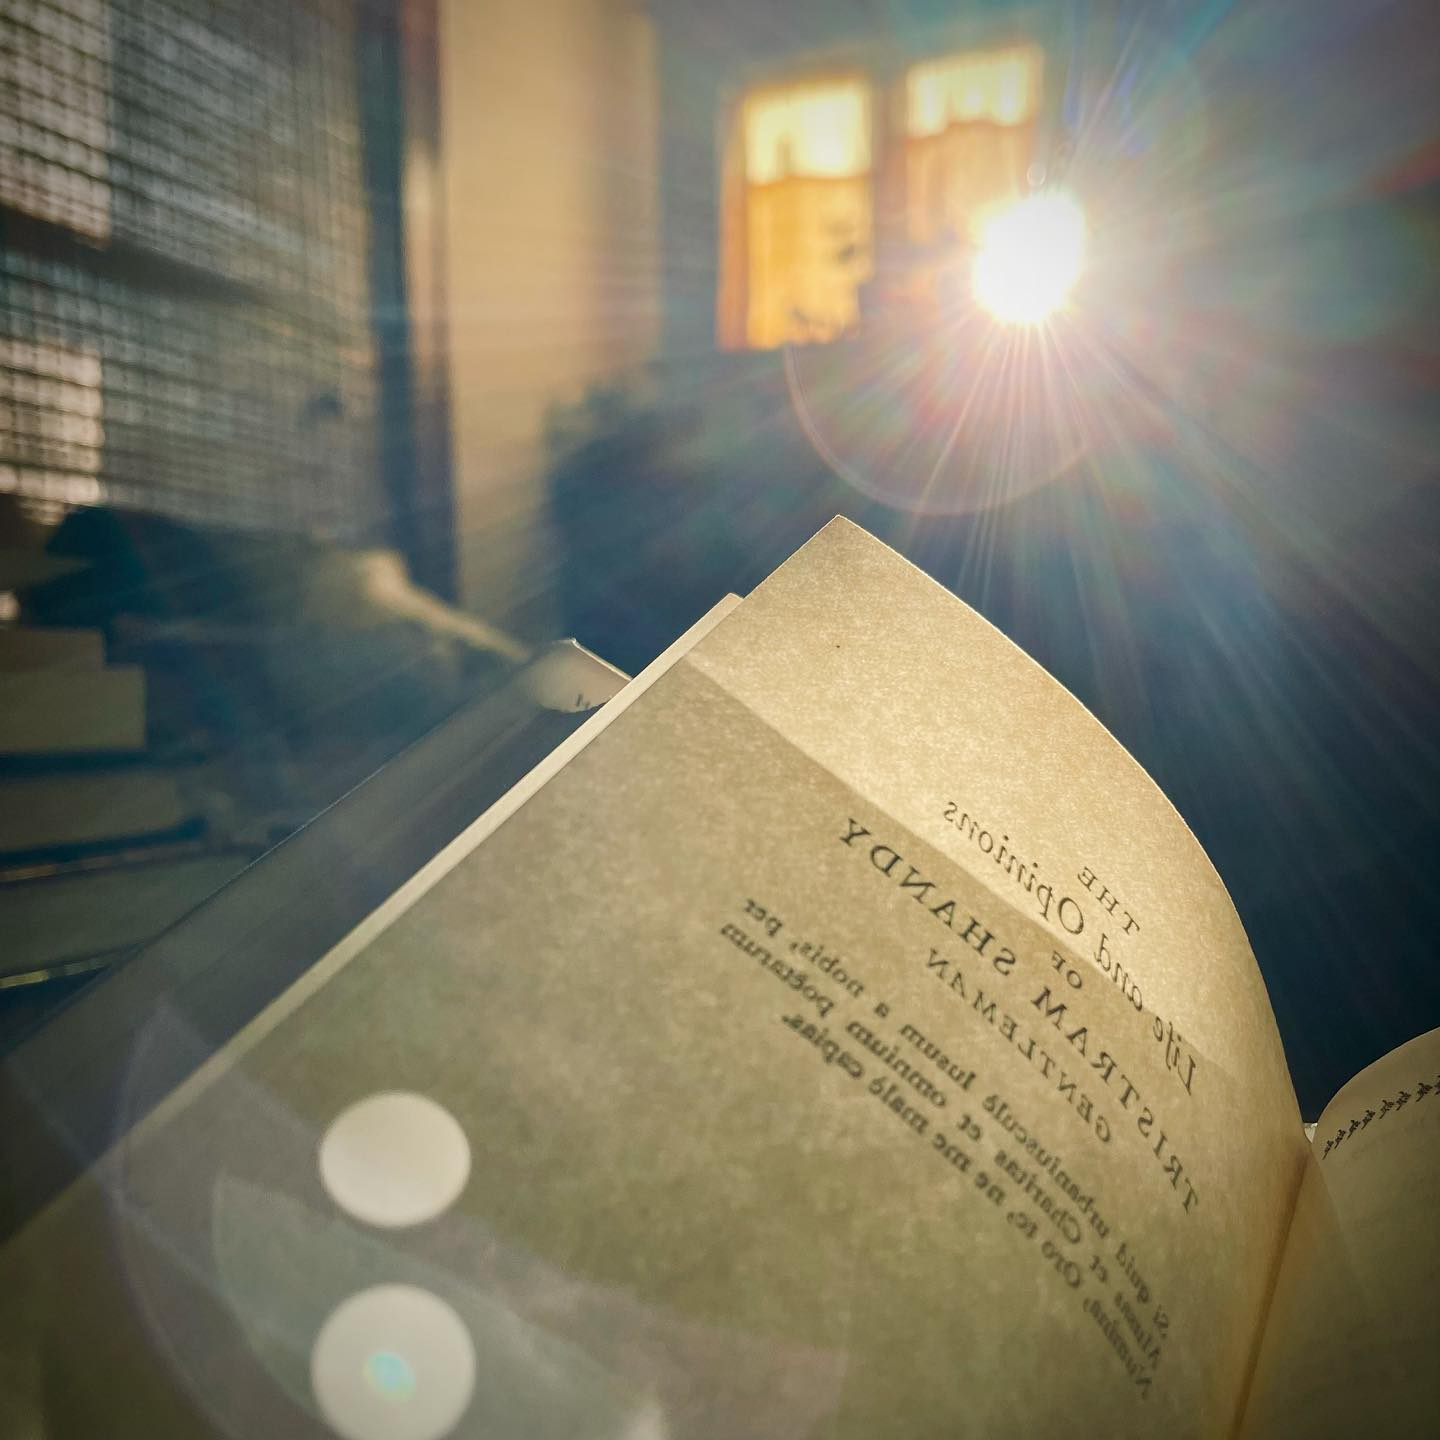 a picture of a book and some dramatic sunlight